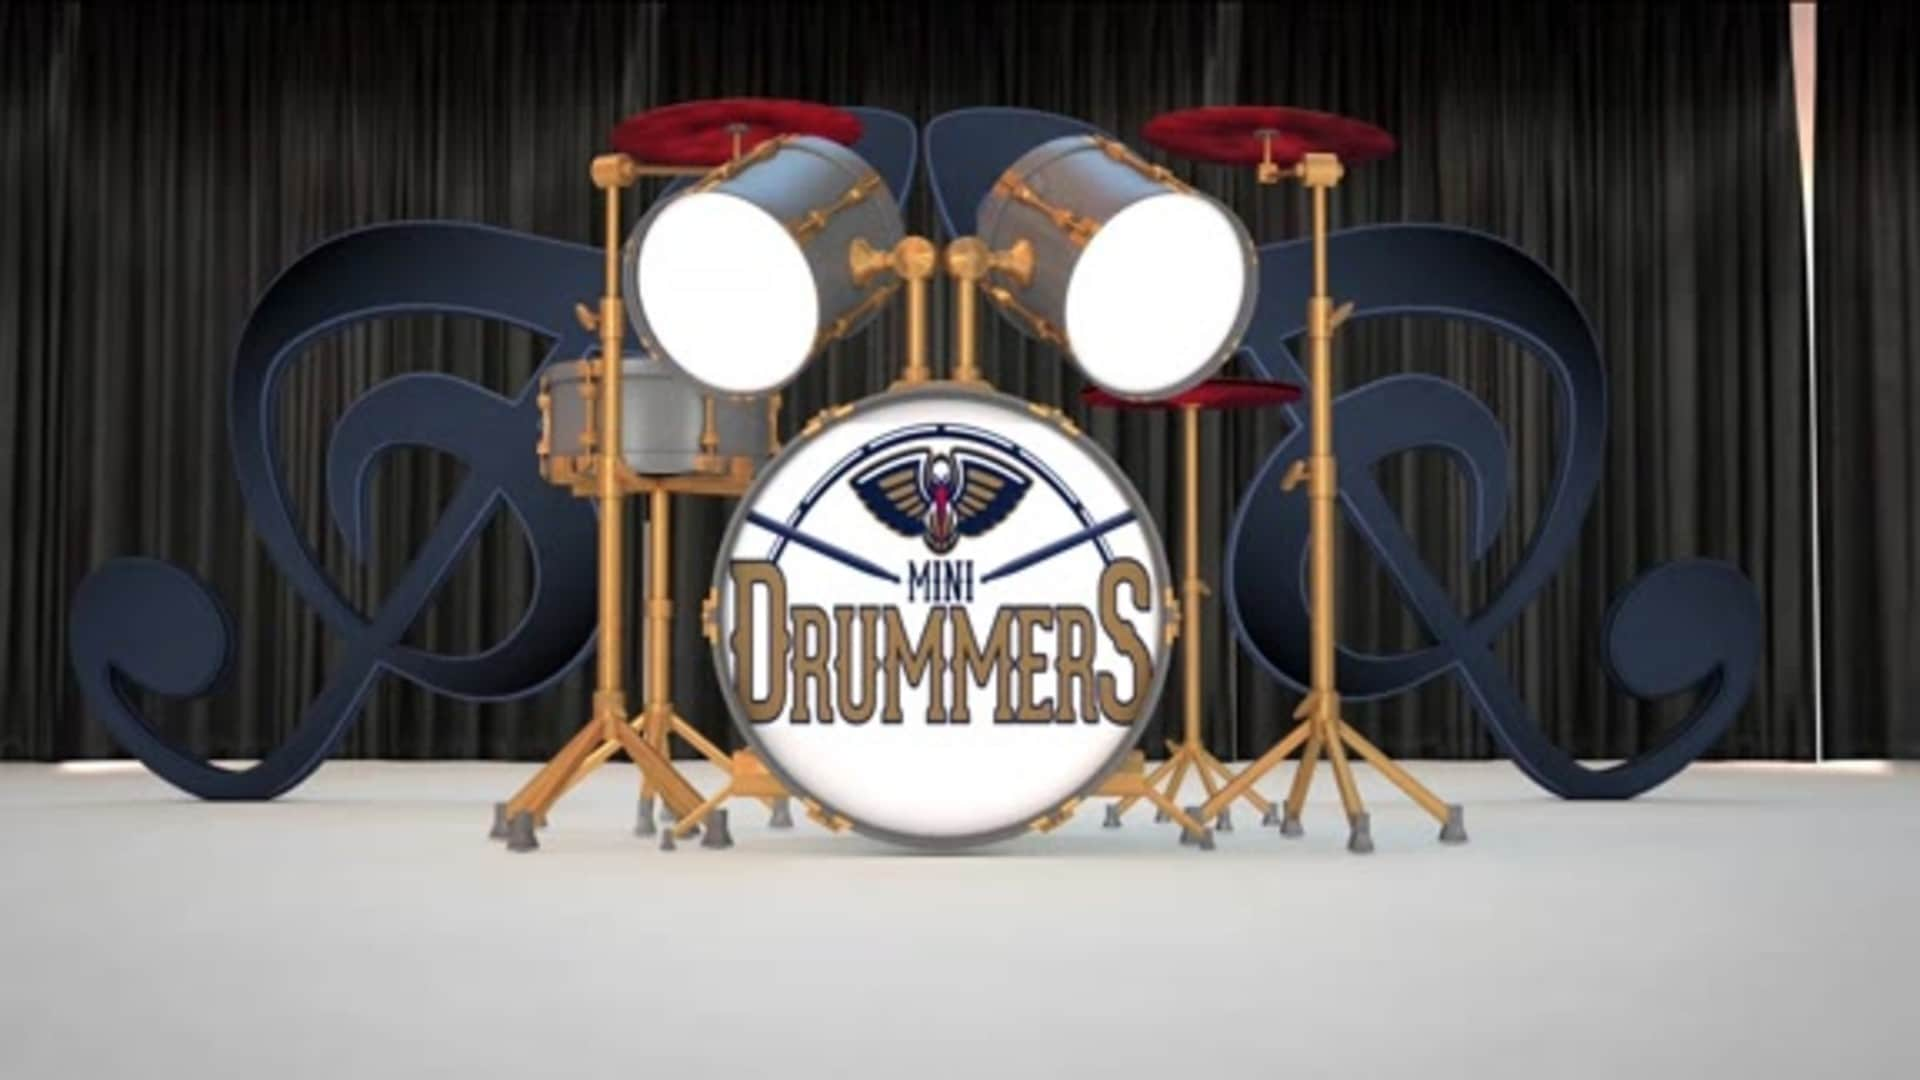 Entertainment: Pelicans Mini Drummers performance - March 6 vs. Miami Heat